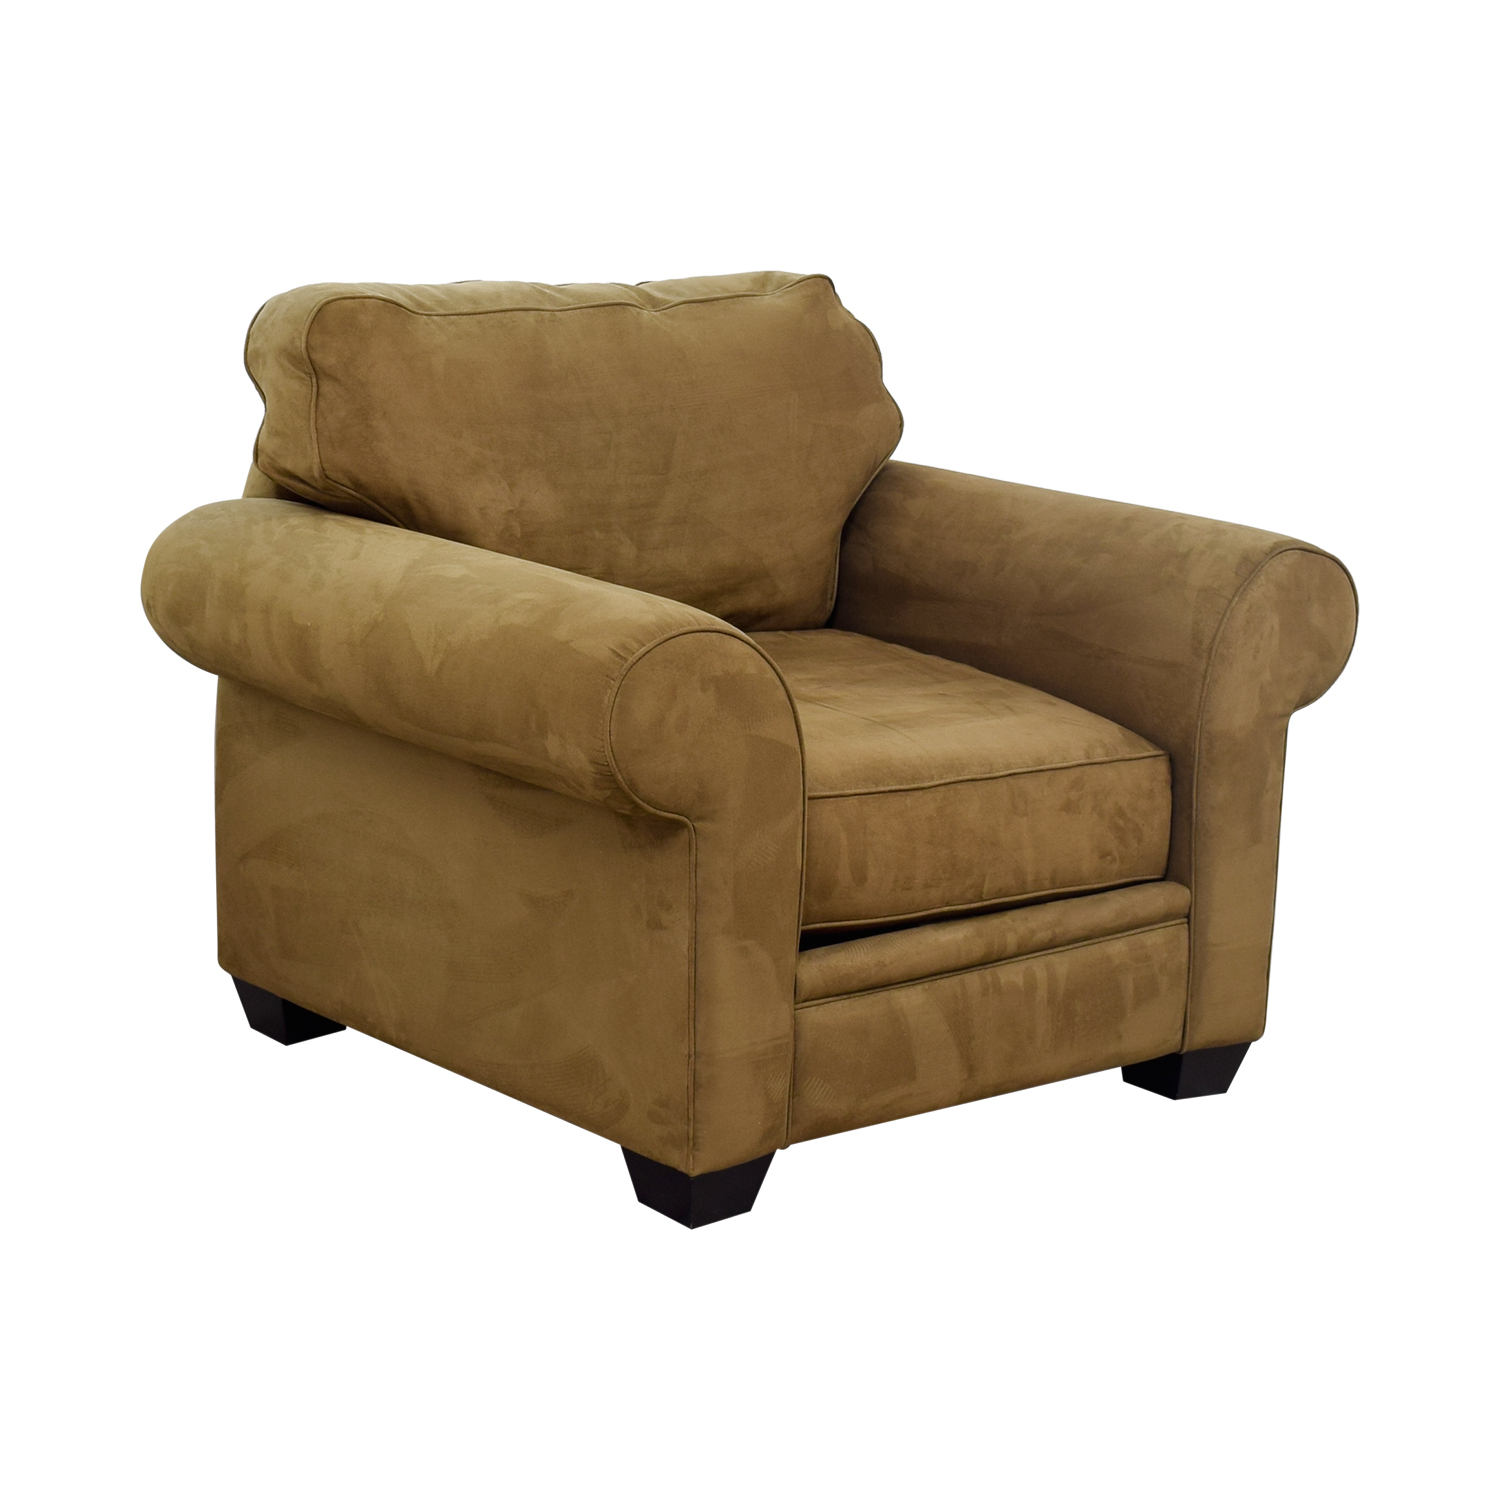 Marvelous ... Macyu0027s Macyu0027s Tan Oversized Armchair Coupon ...